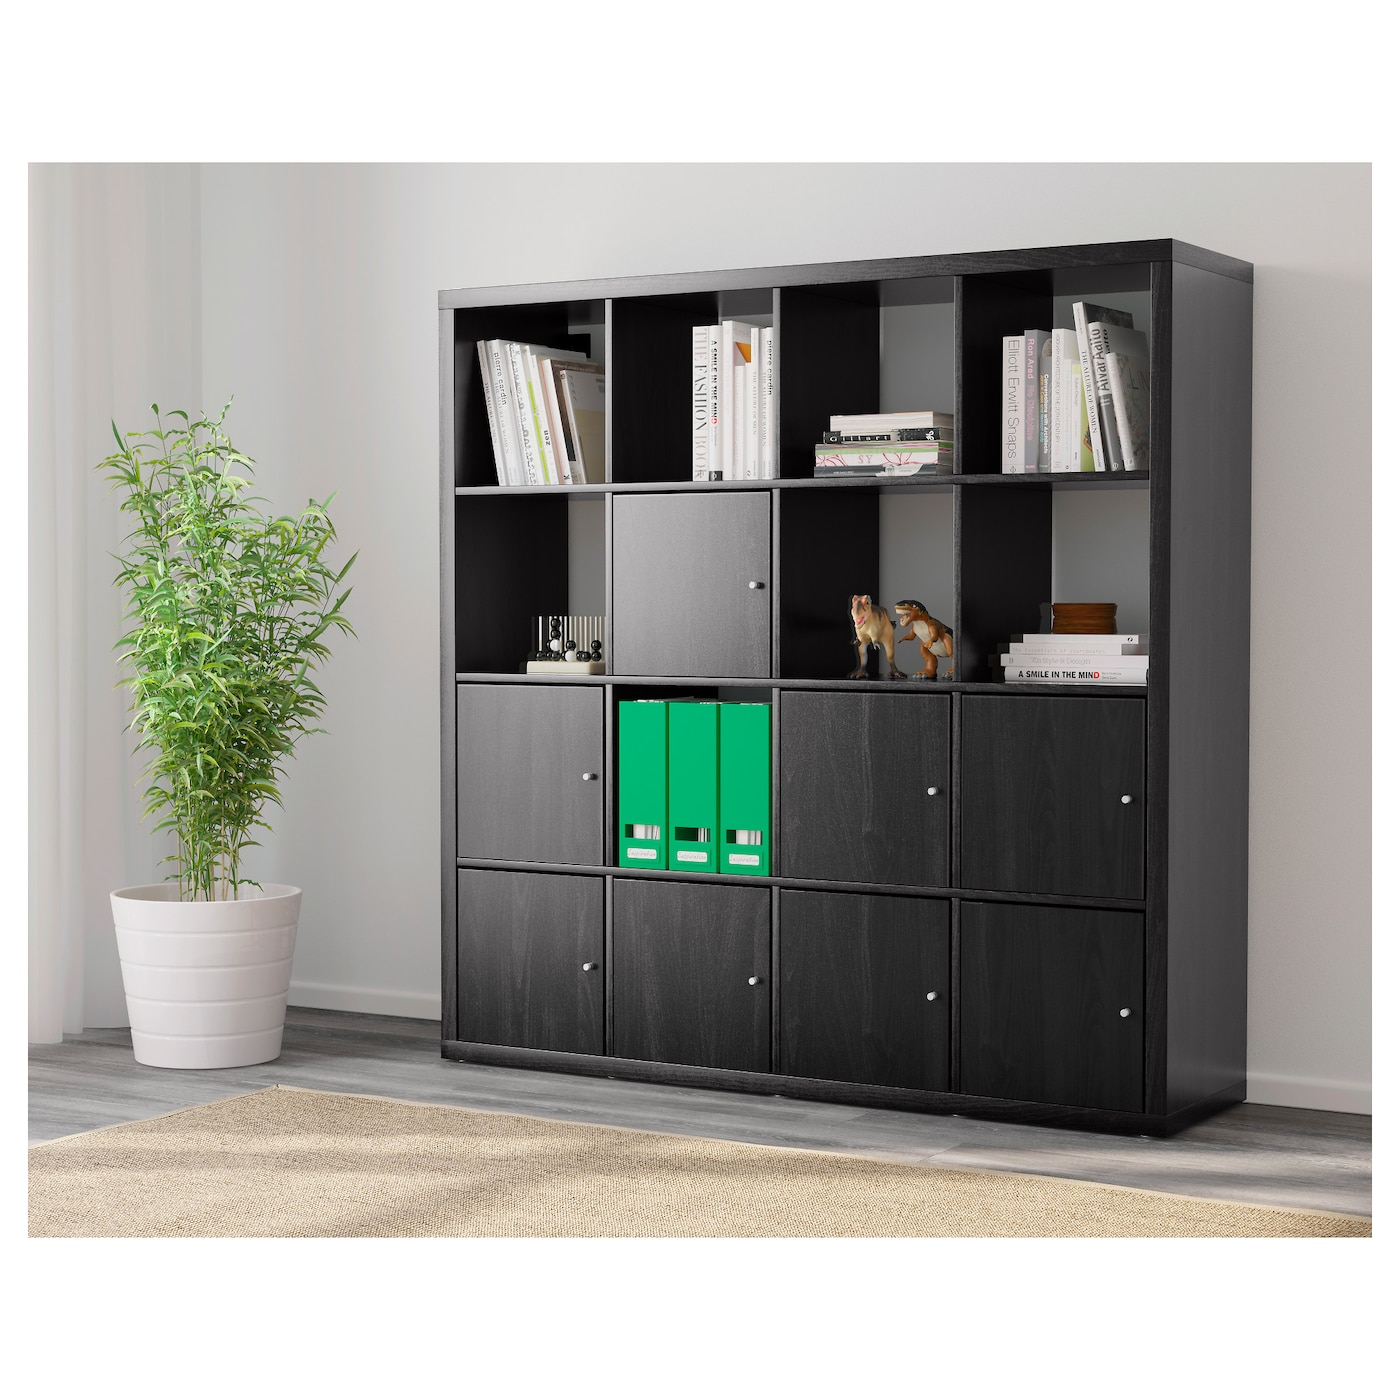 kallax shelving unit with 8 inserts black brown 147x147 cm ikea. Black Bedroom Furniture Sets. Home Design Ideas